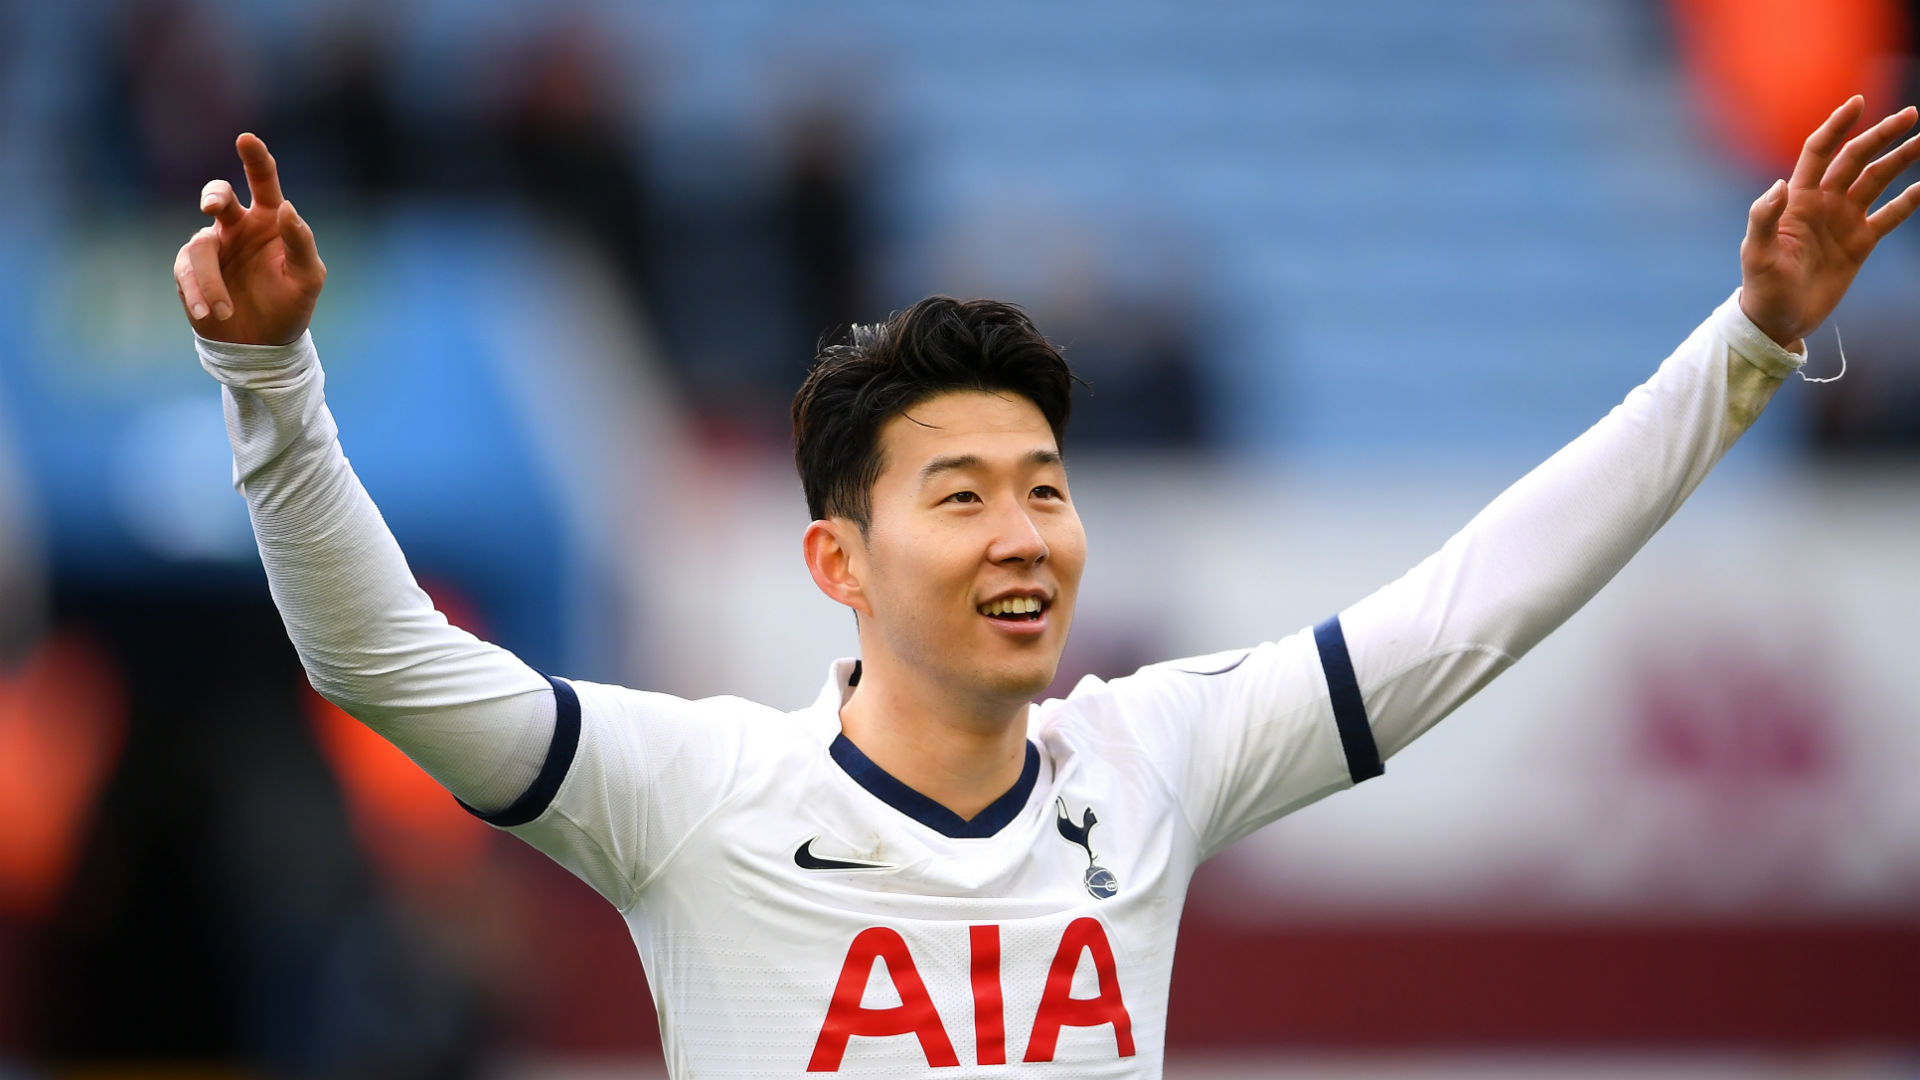 Son to complete military service during Premier League shutdown